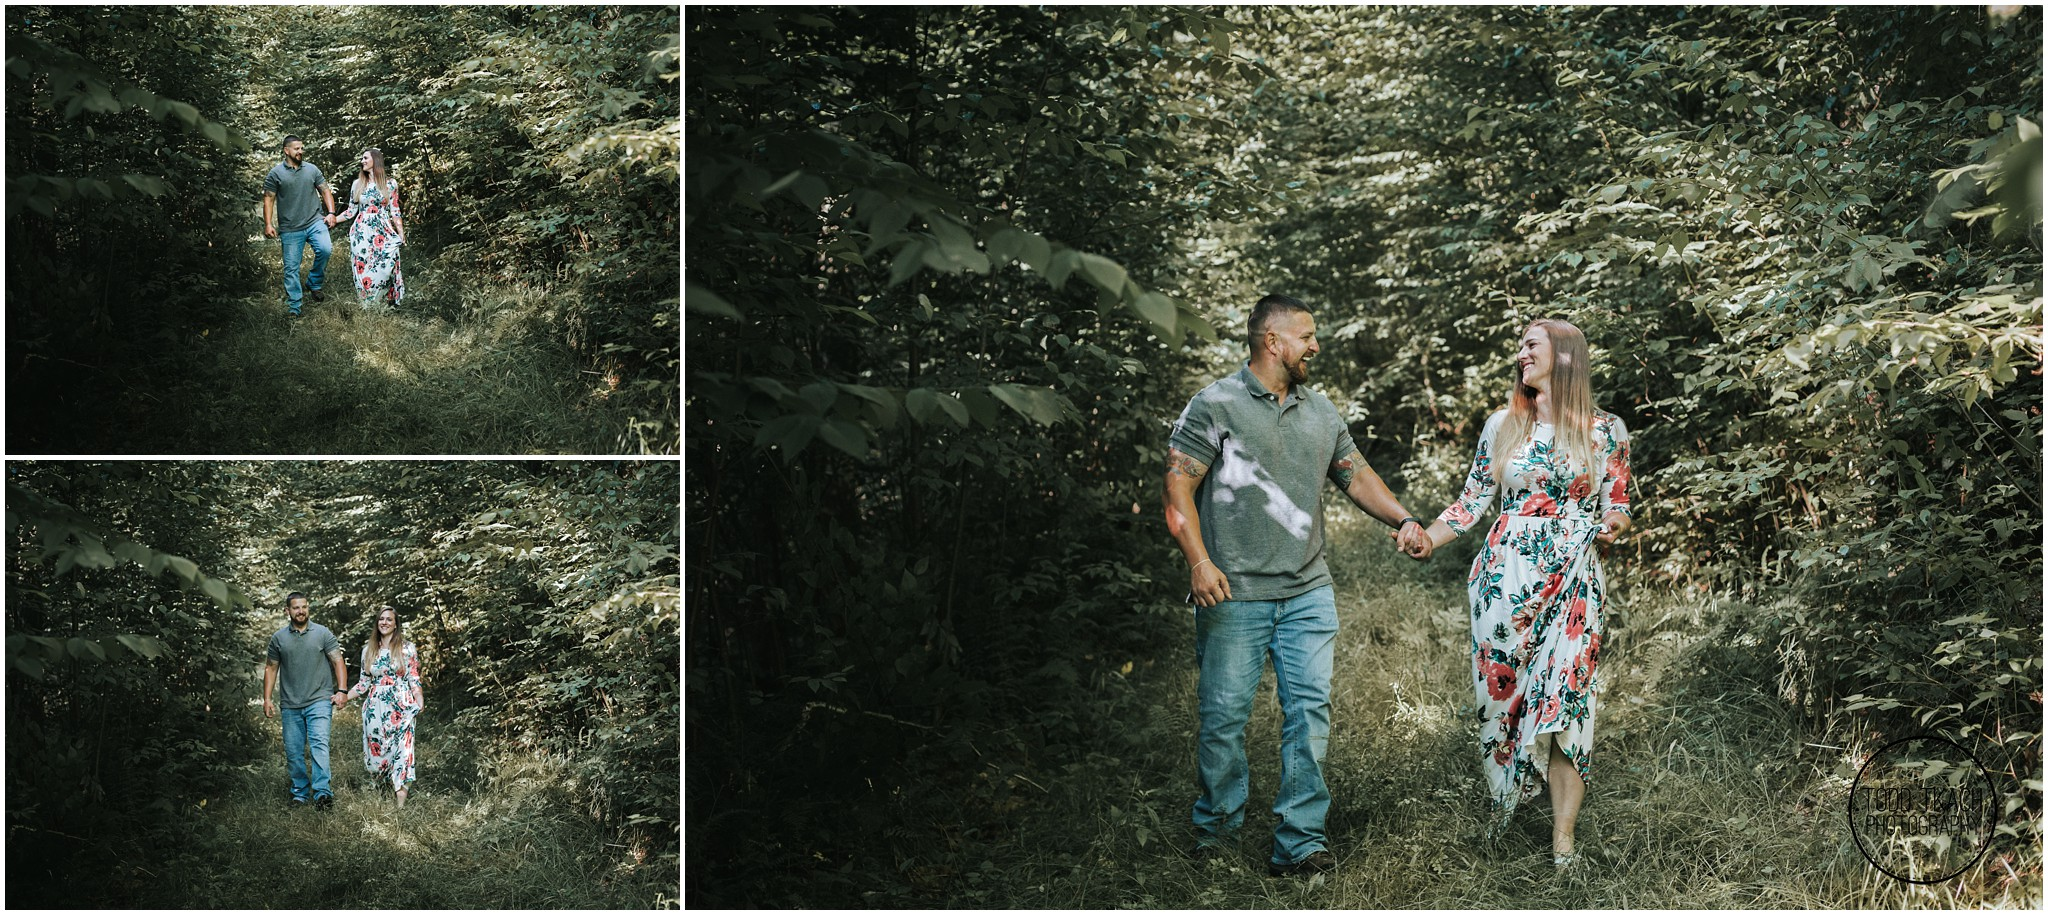 Kim & Brandon Engagement - Forest Walk Collage